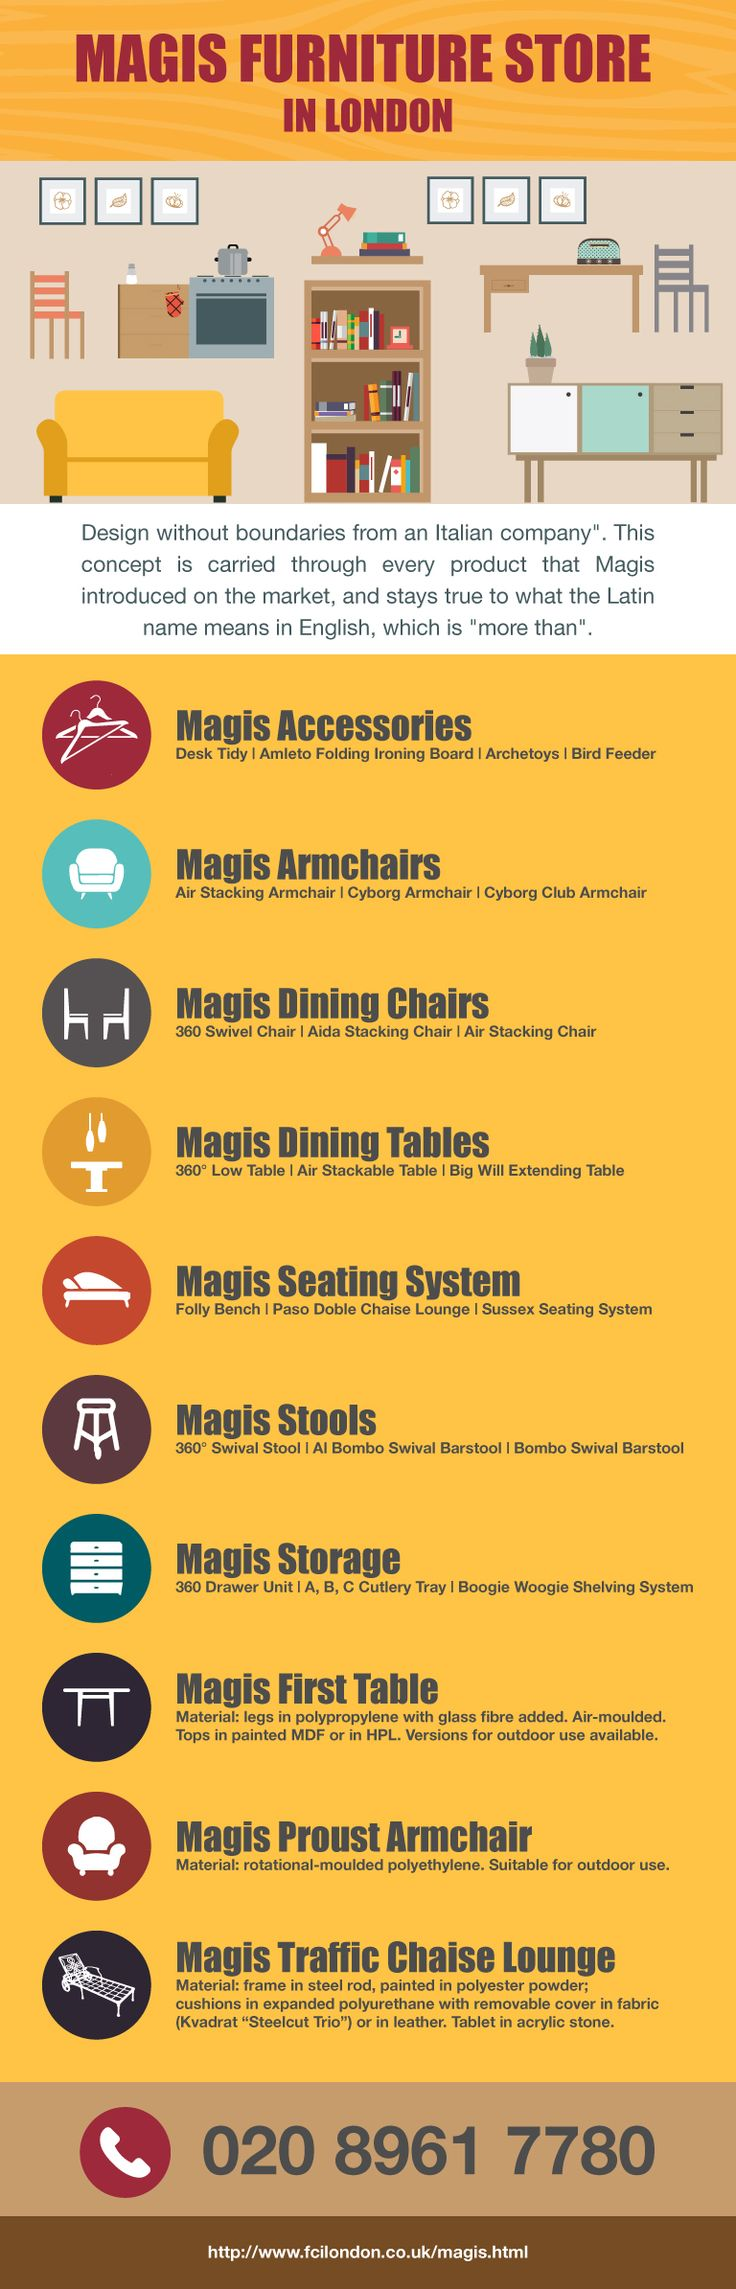 Magis Furniture Store  INFOGRAPHIC   infographics. 17 Best images about INFOGRAPHICS on Pinterest